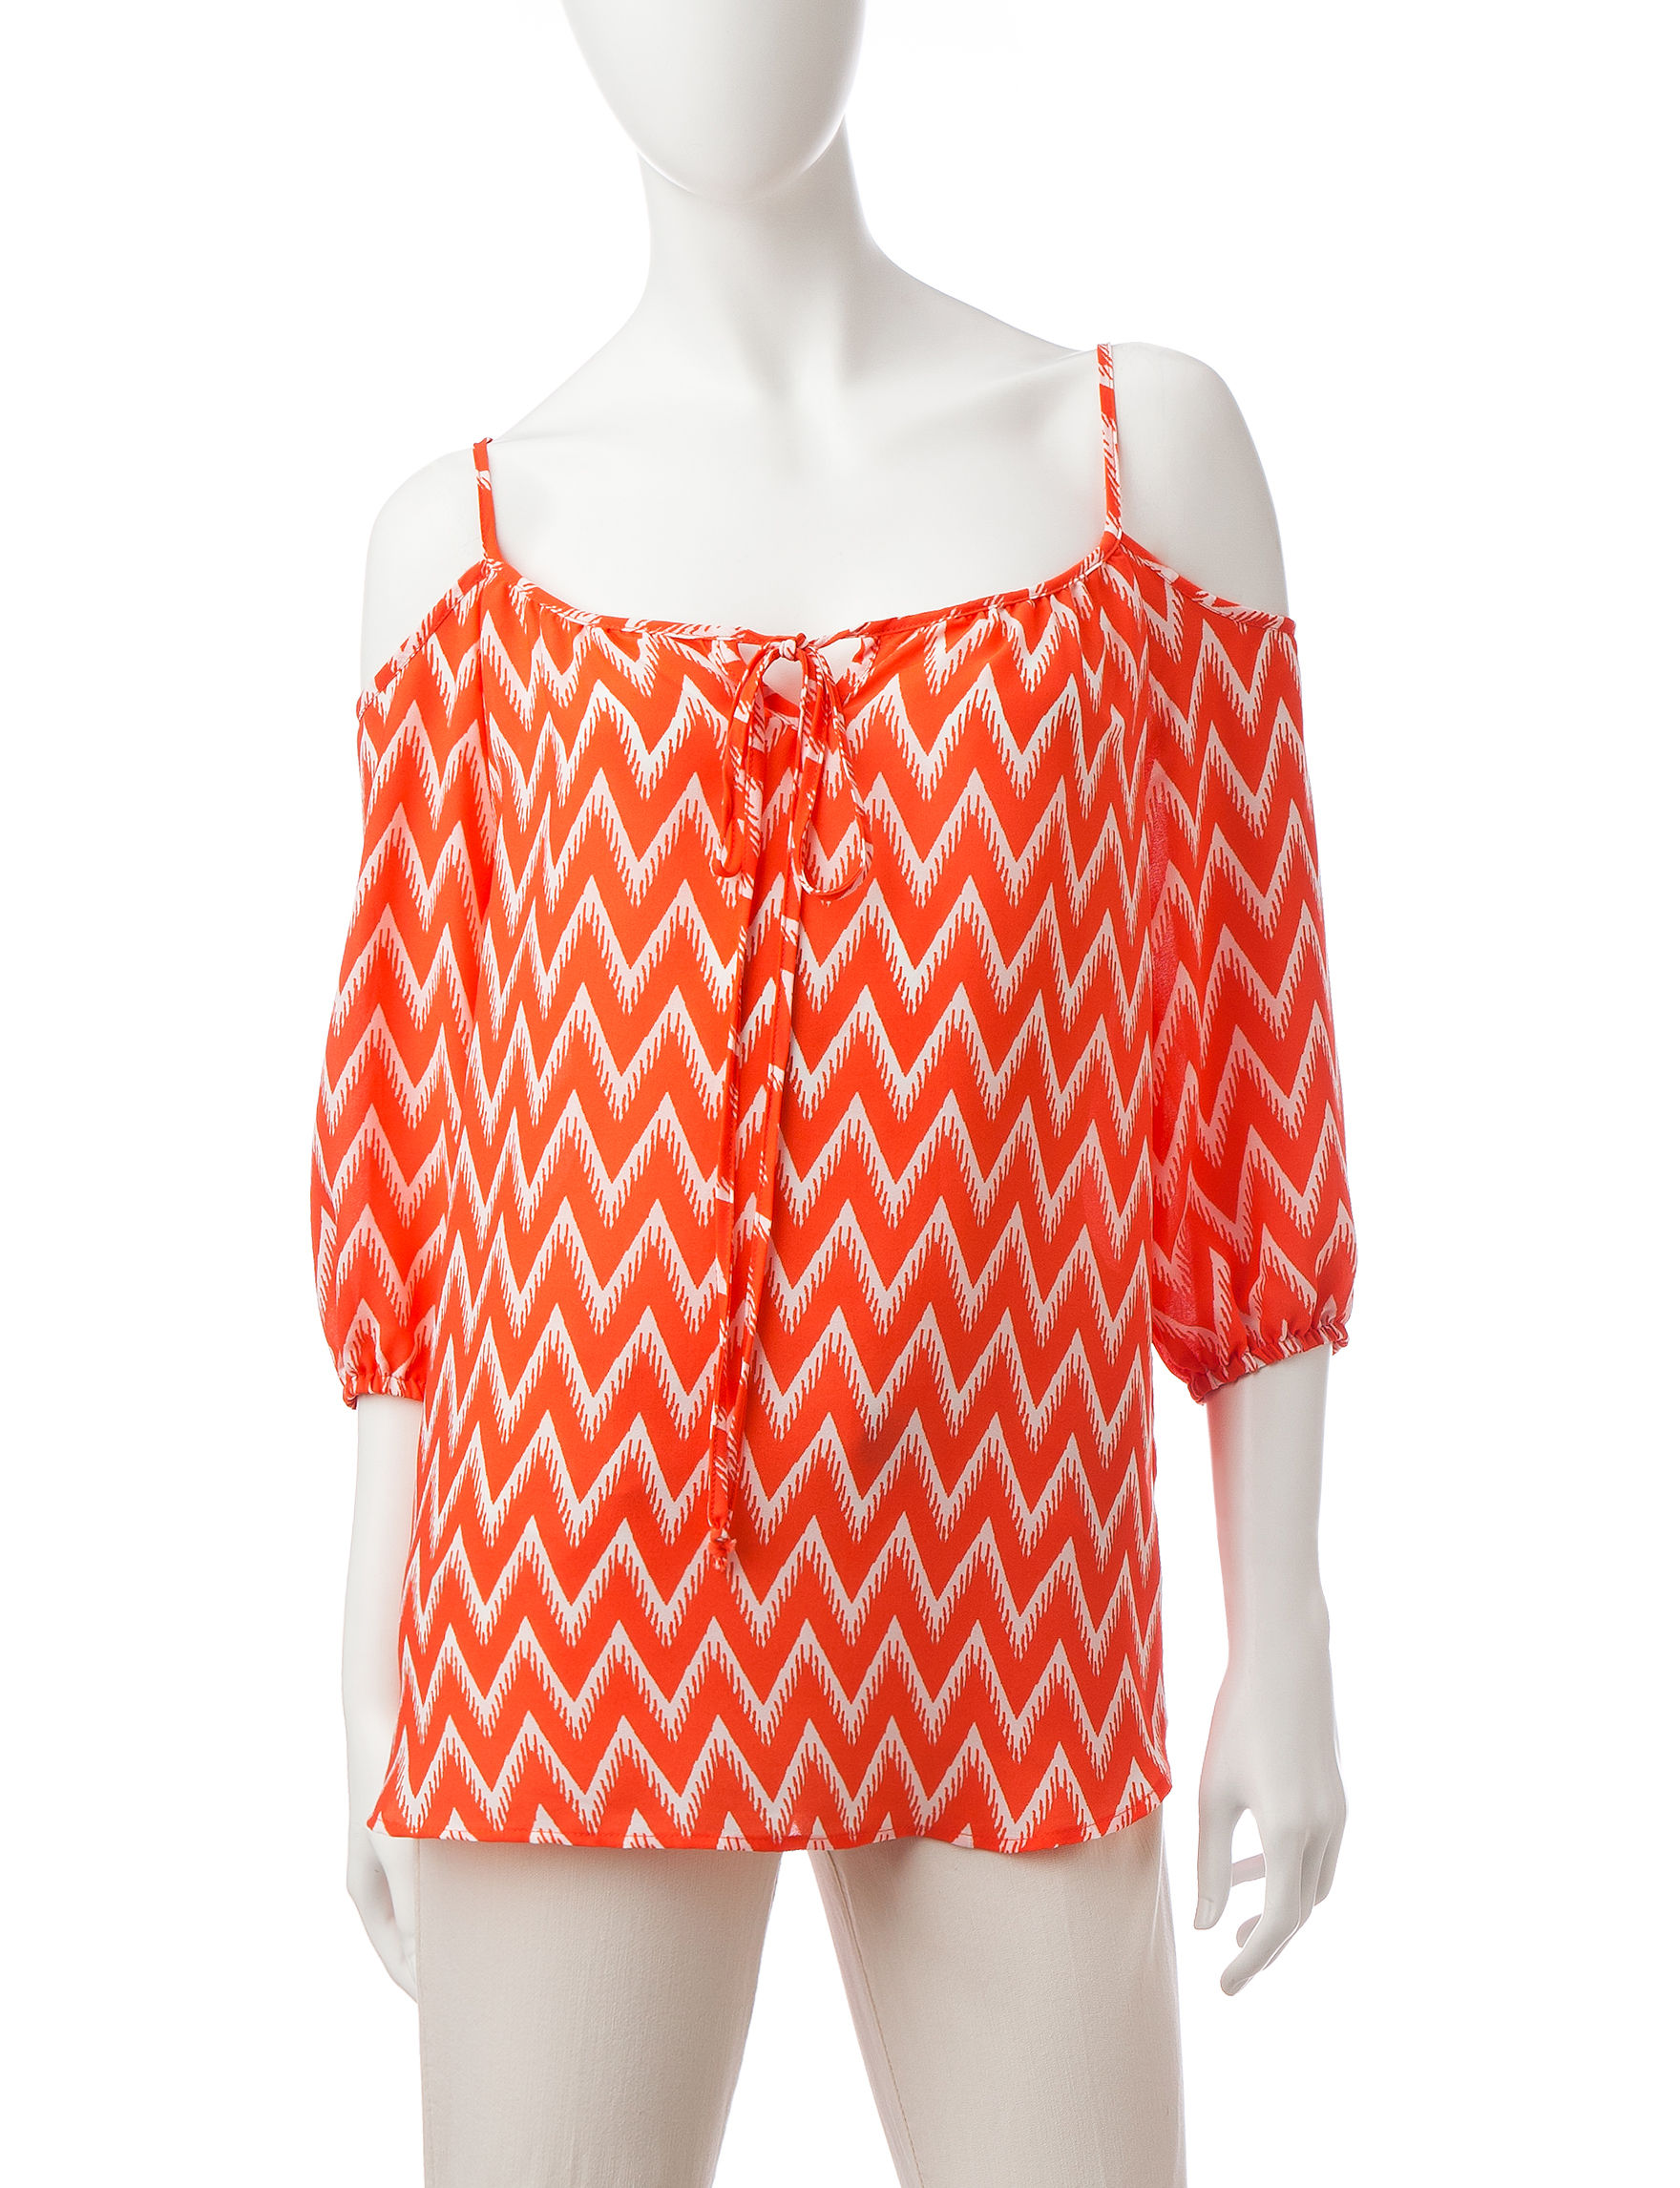 Wishful Park Medium Orange / White